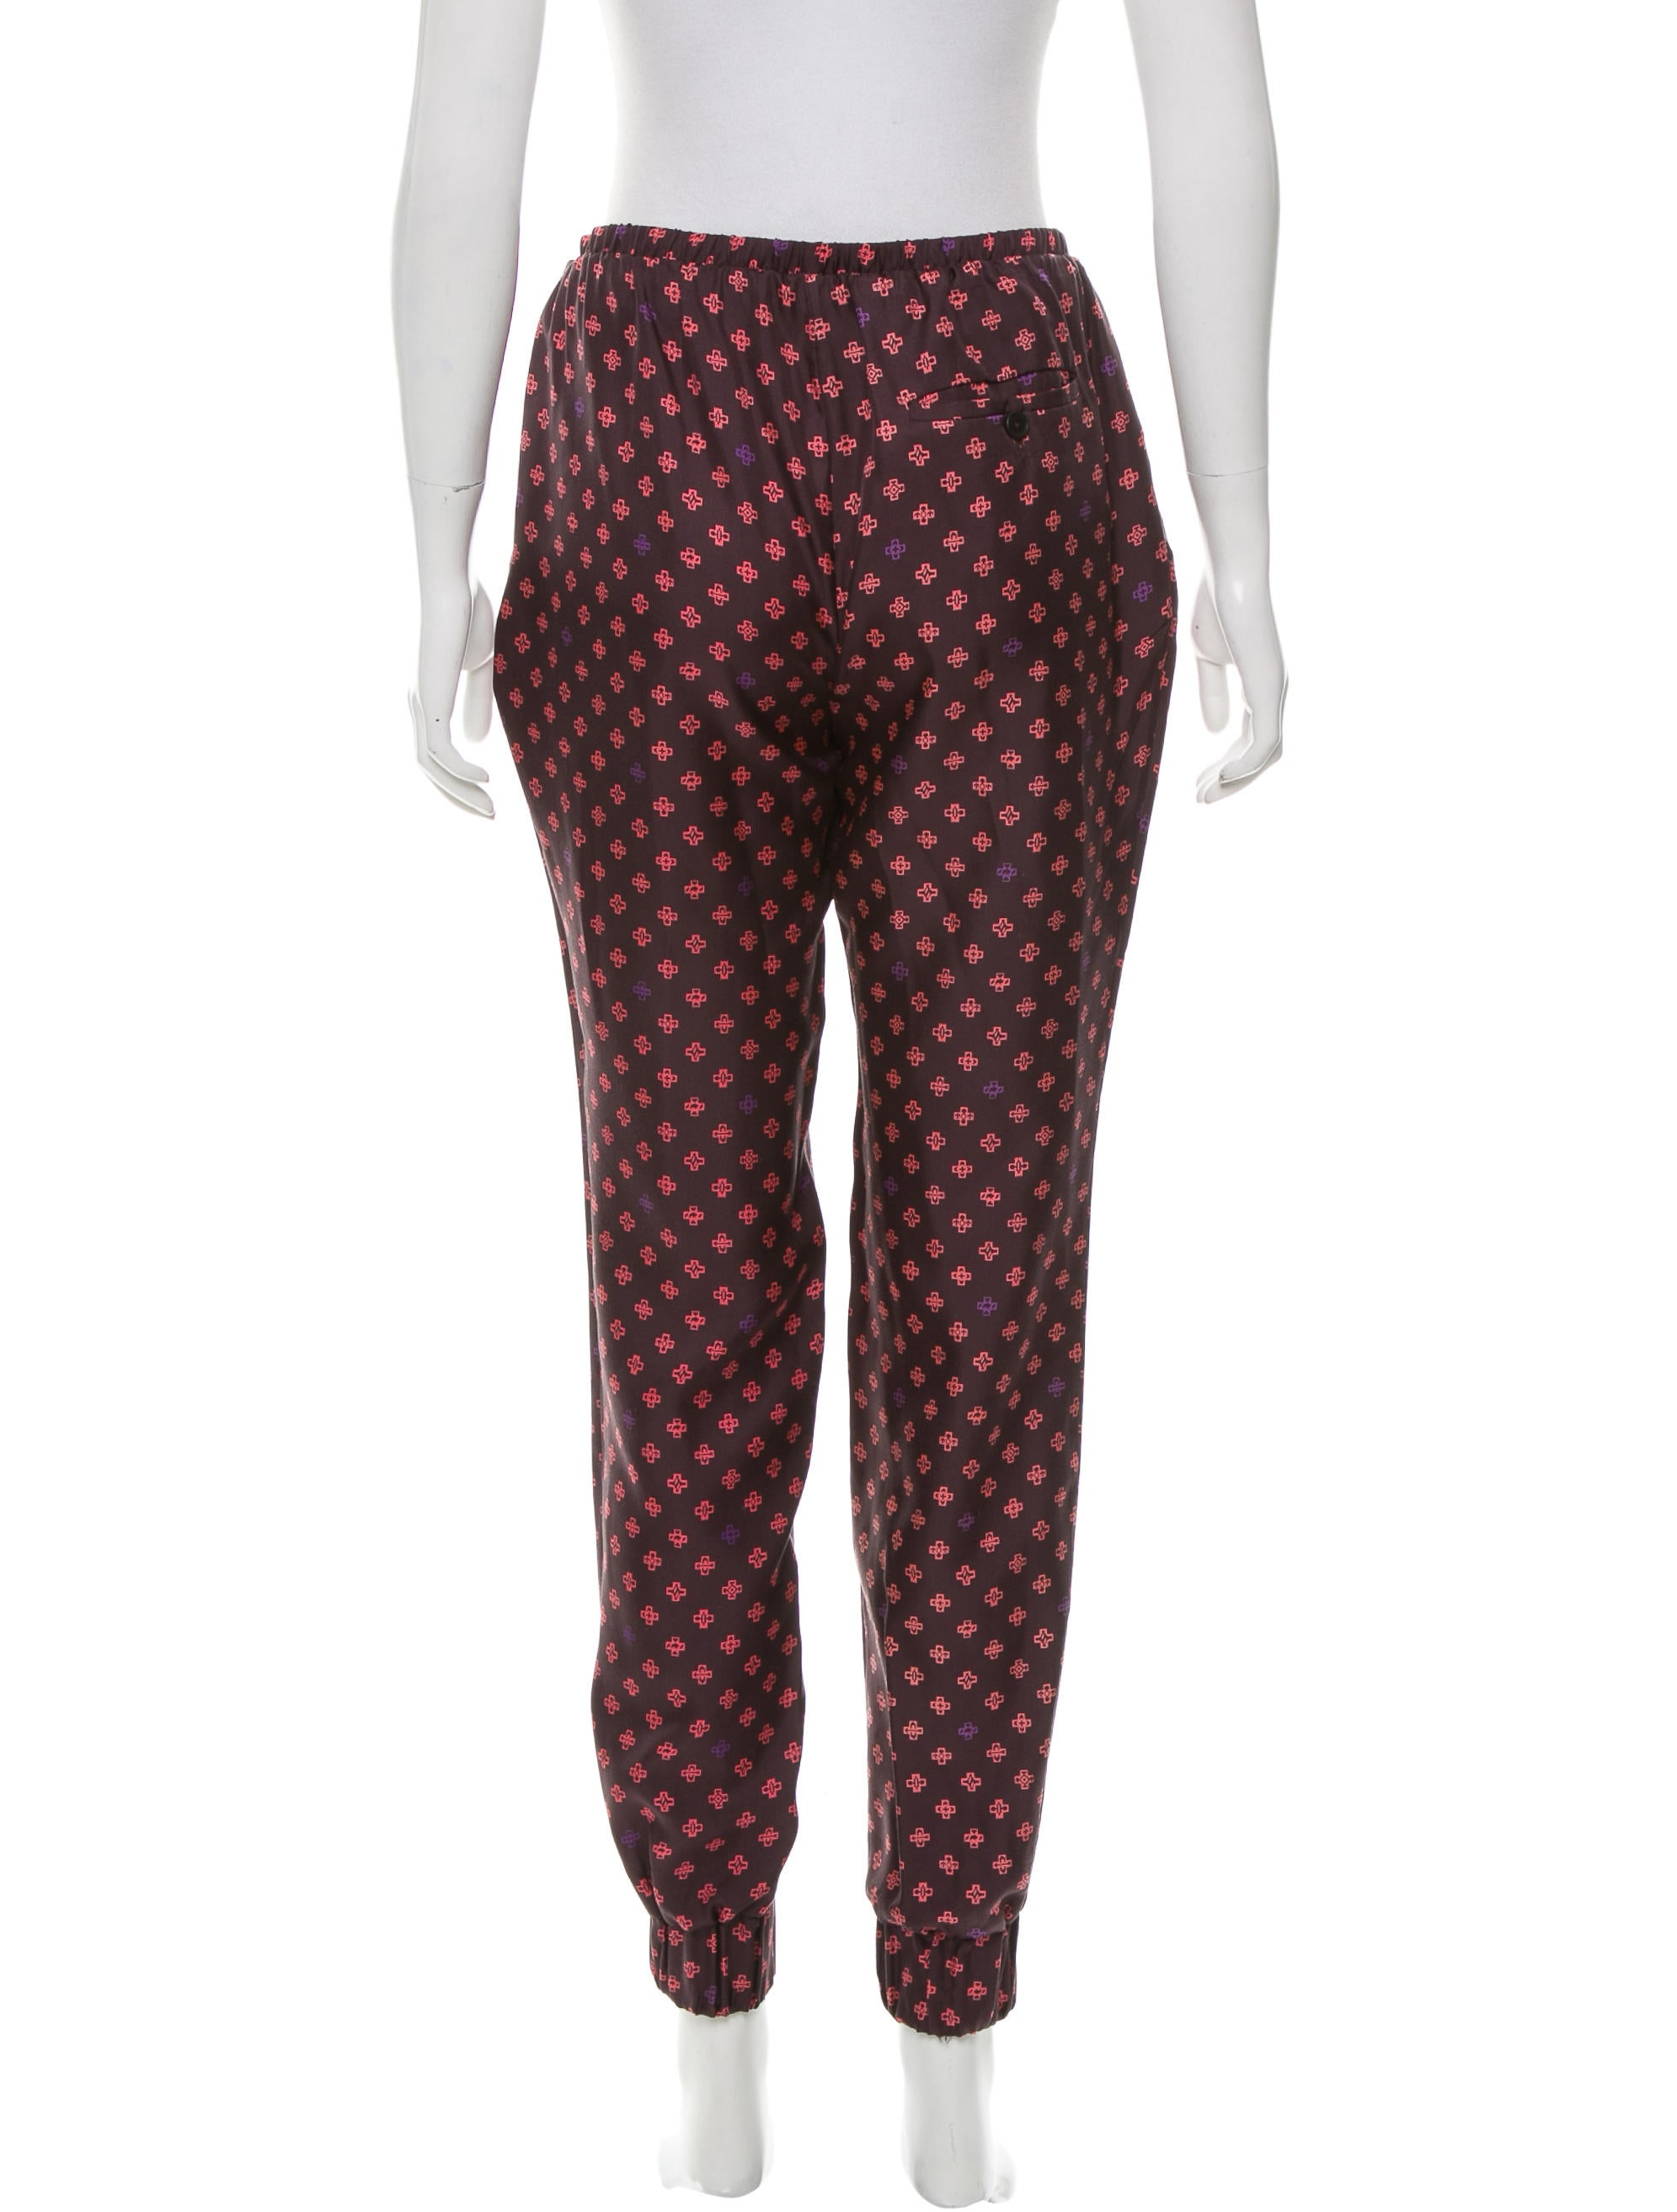 Discover printed trousers with ASOS. From floral & geometric, to metallic & patterned with ASOS.